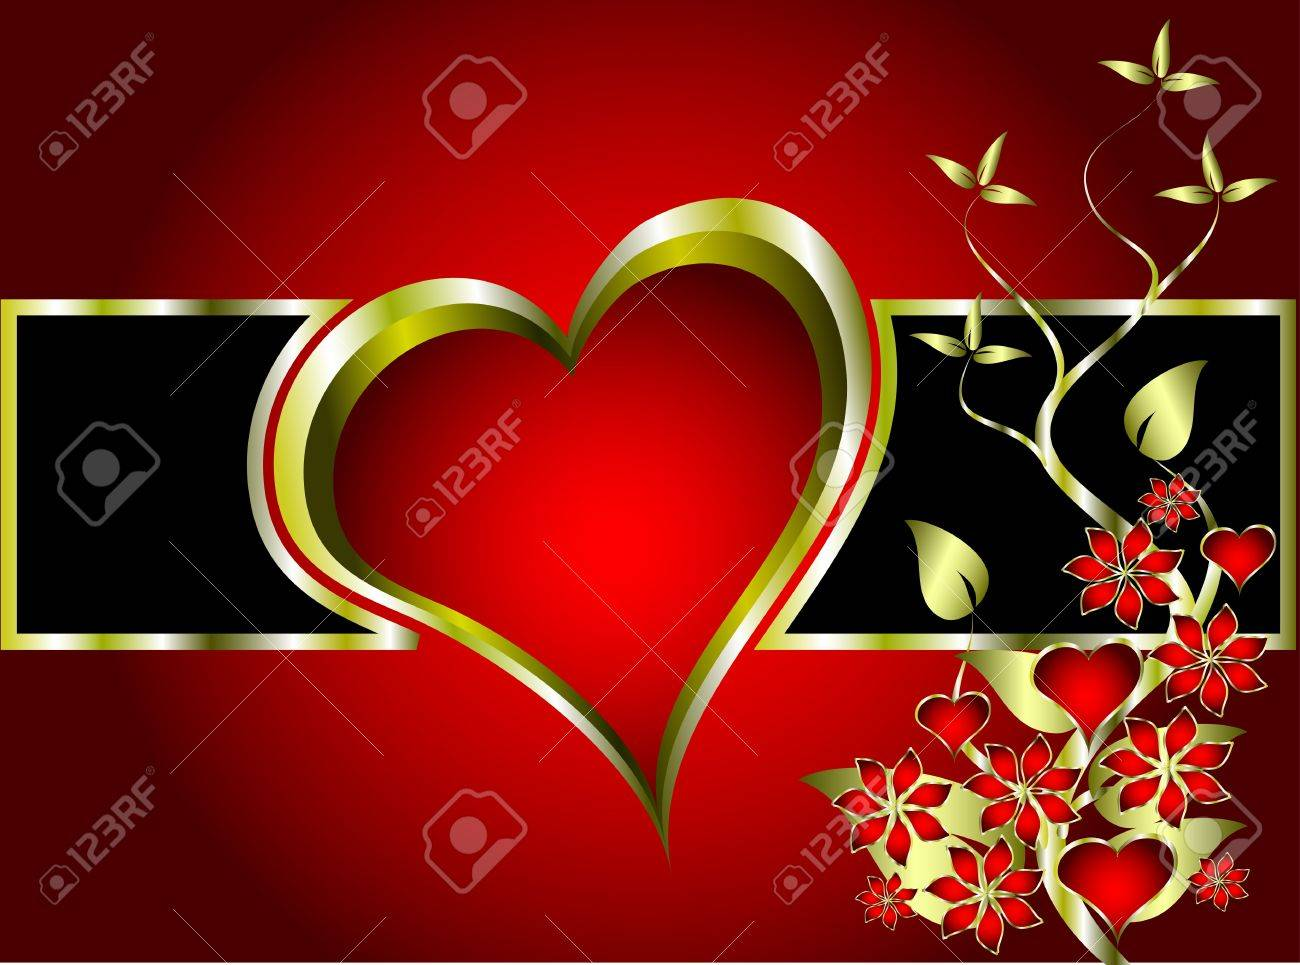 A valentines background with a series of  gold hearts on a deep red backdrop and a large central heart with room for text Stock Vector - 8596600